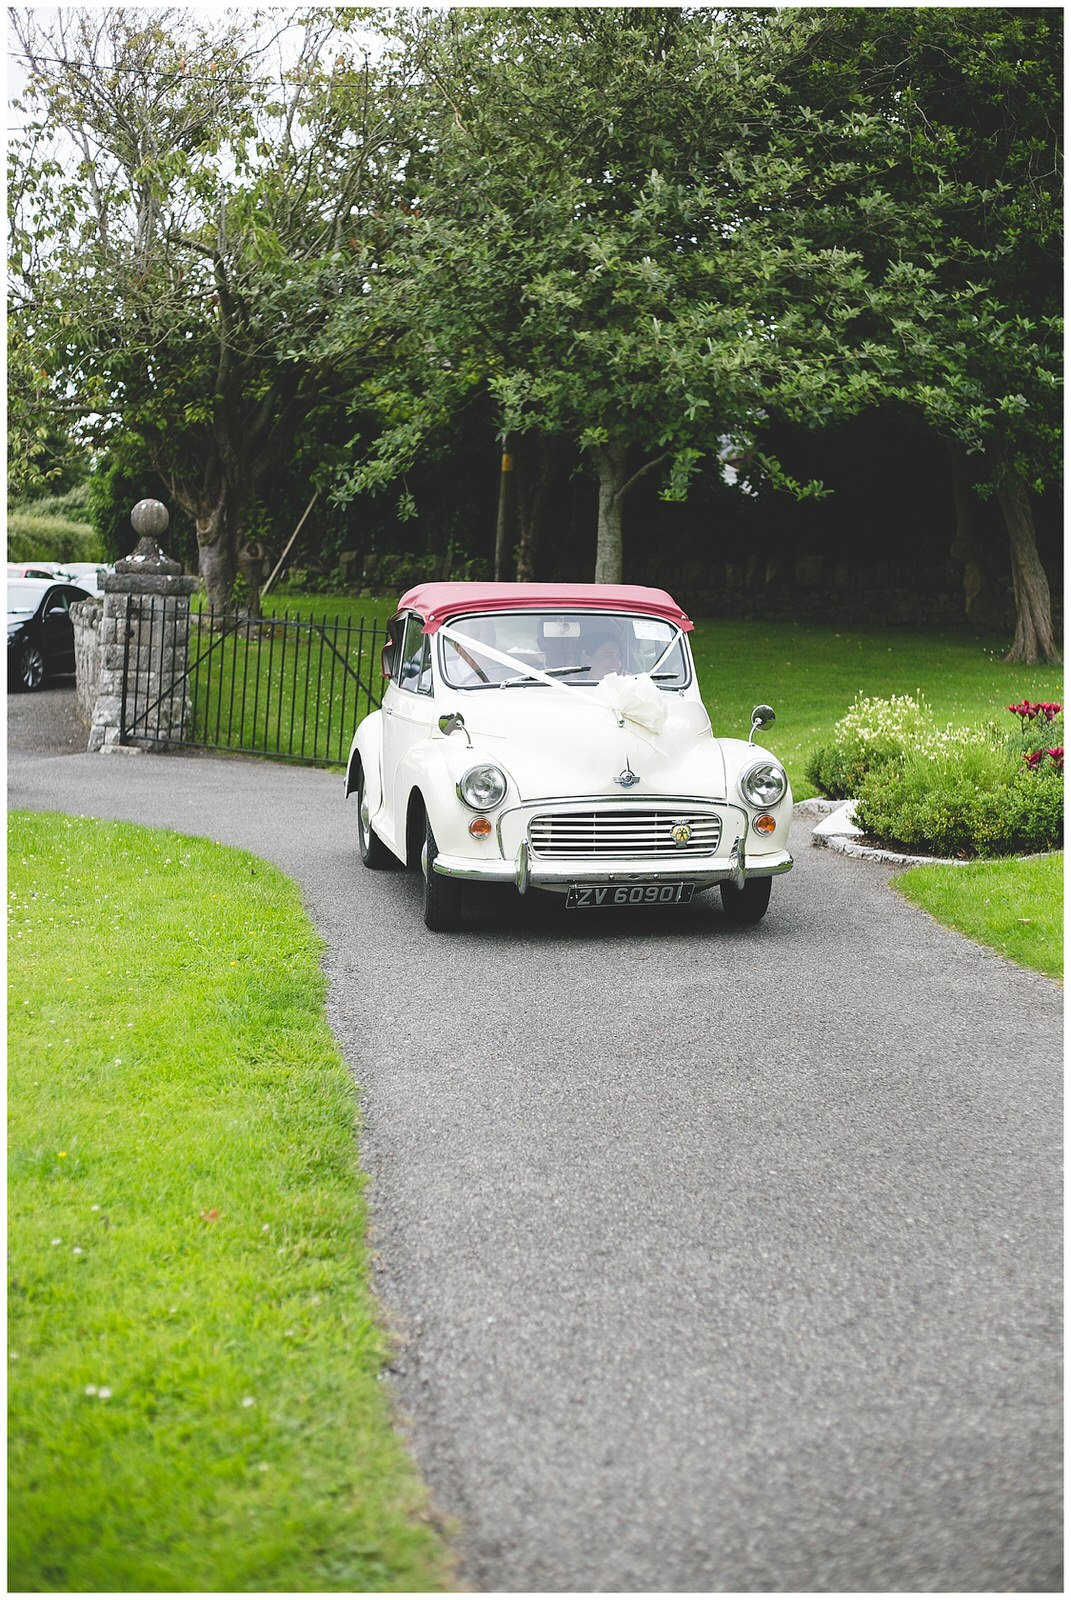 Cute white & red mini wedding car